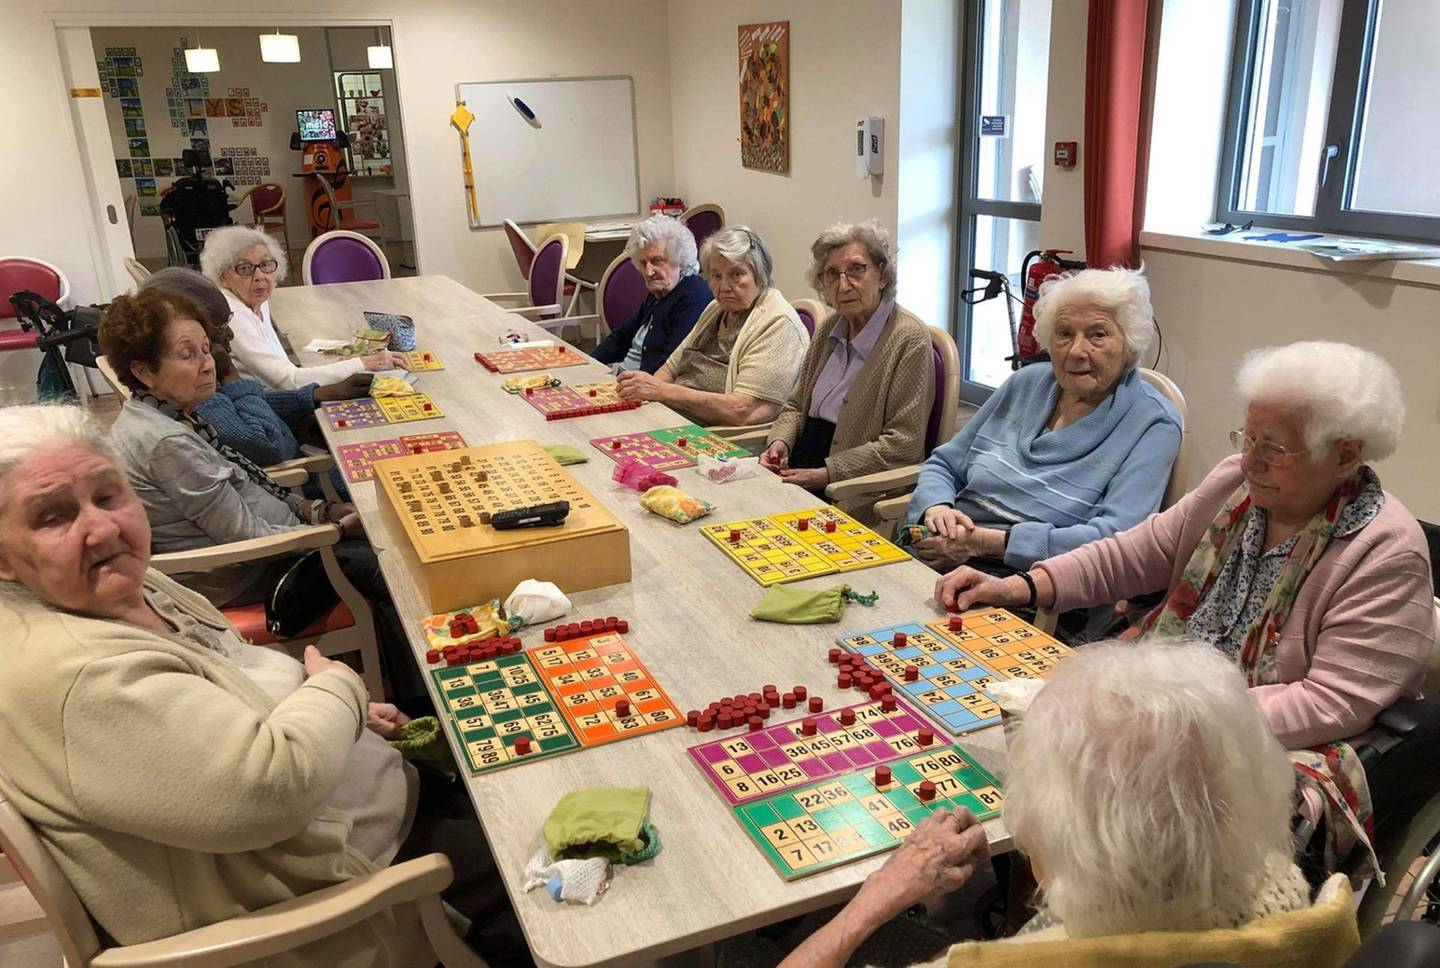 In this photo provided by the Vilanova nursing home, residents play inside the Vilanova nursing home on April 30 2020 in Corbas, central France. As the coronavirus cut a deadly path through nursing homes, staff locked themselves in with the 106 residents at this care home to stop COVID-19 coronavirus from infecting and killing the vulnerable older adults in their care, and they have not had any people falling victim to the virus.(Valerie Martin via AP)